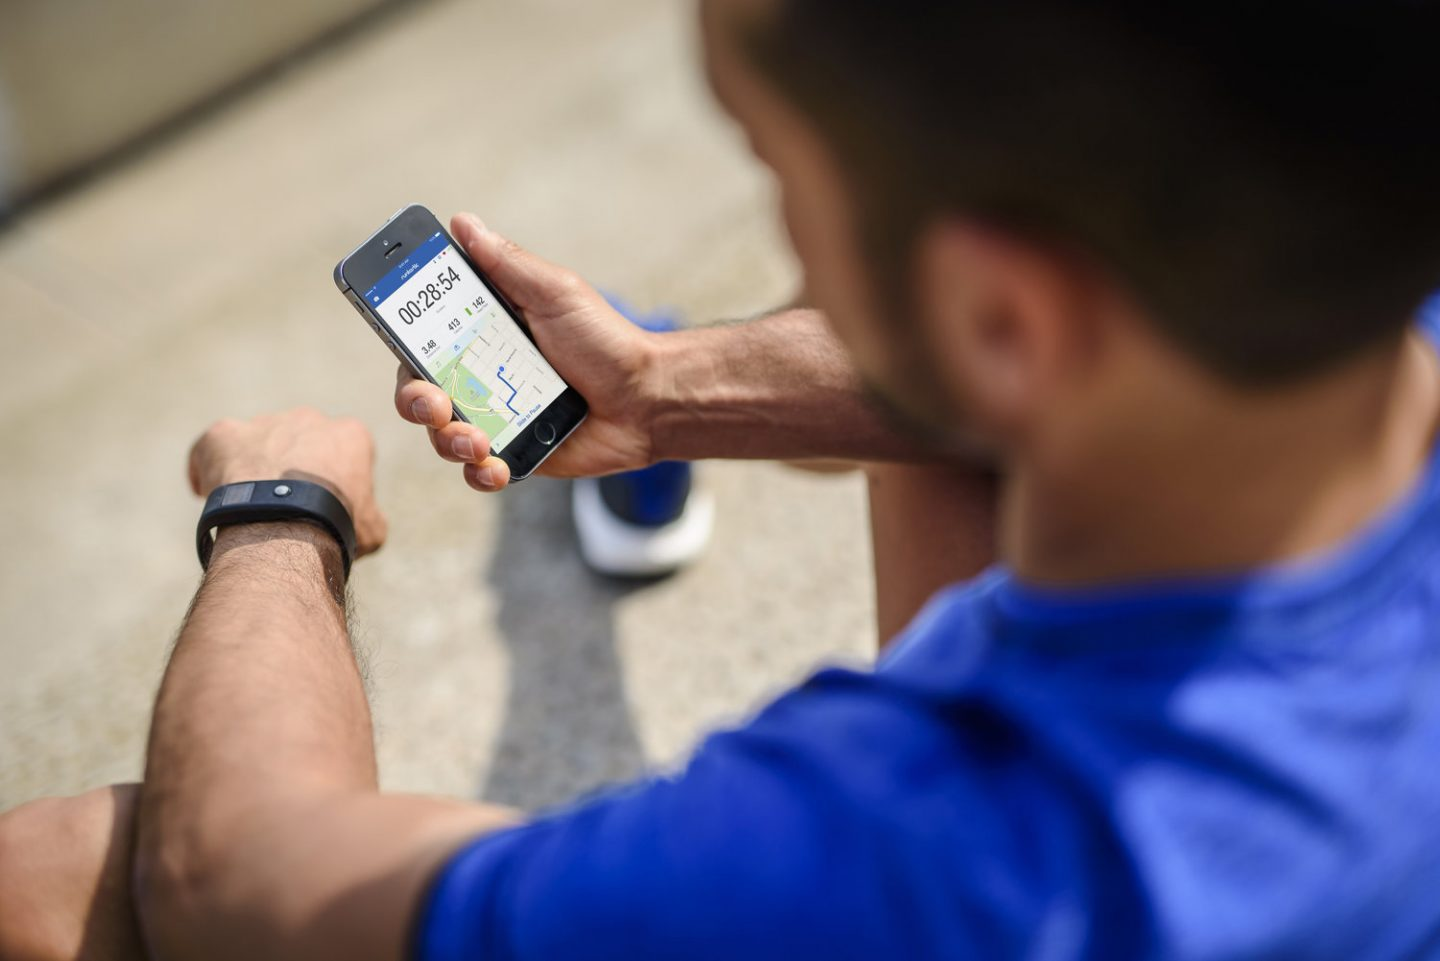 man in running clothes looking at the runtastic app on his phone